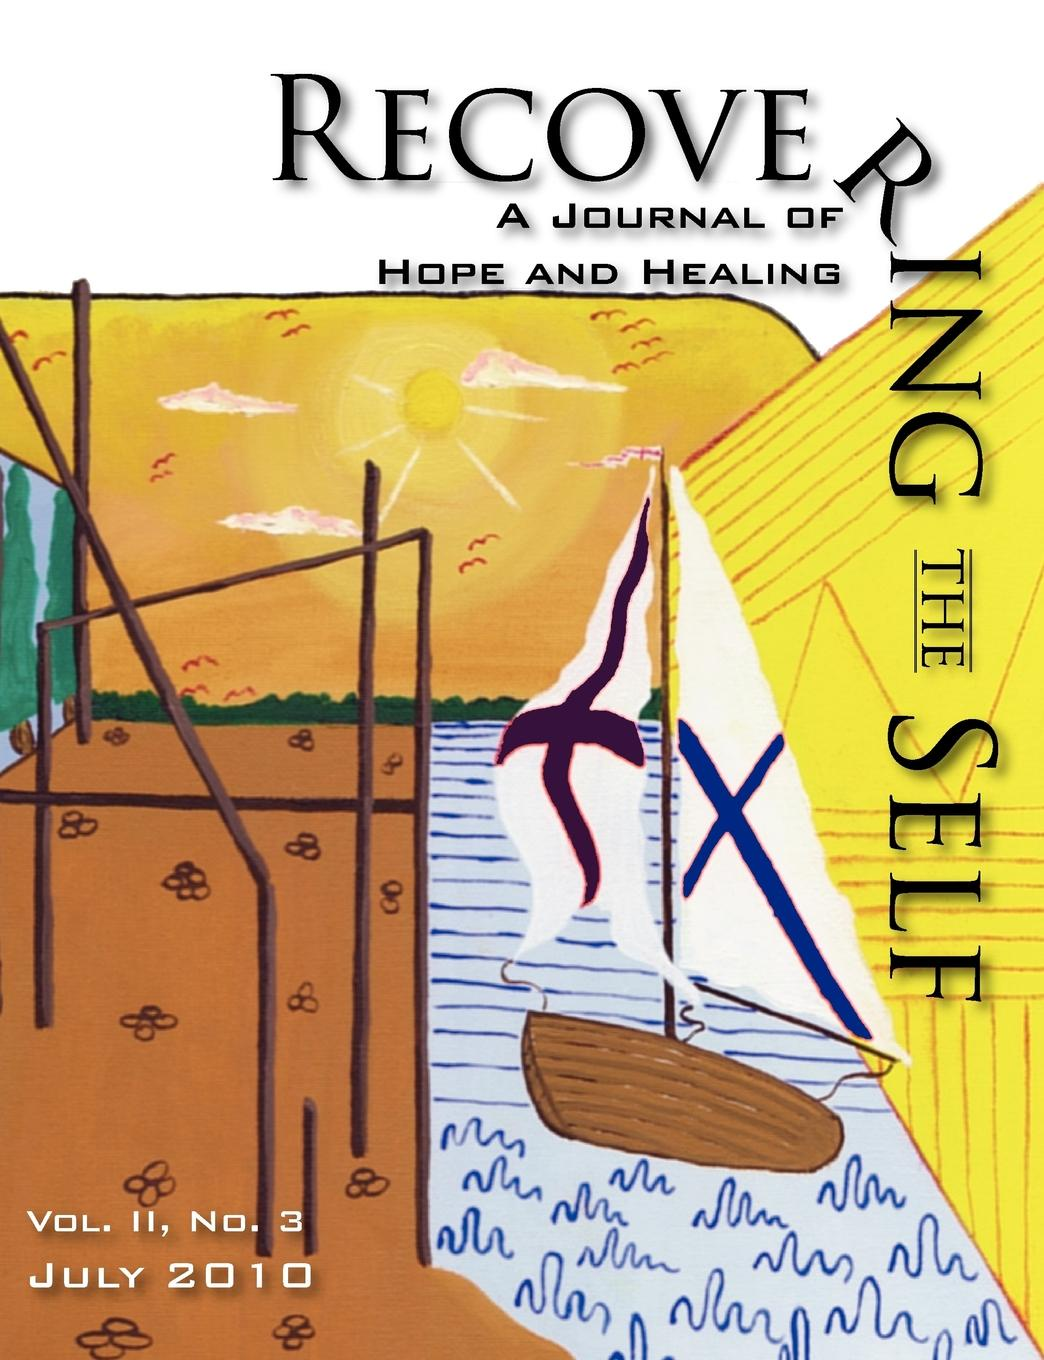 Recovering The Self. A Journal of Hope and Healing (Vol. II, No.3) recovering the self